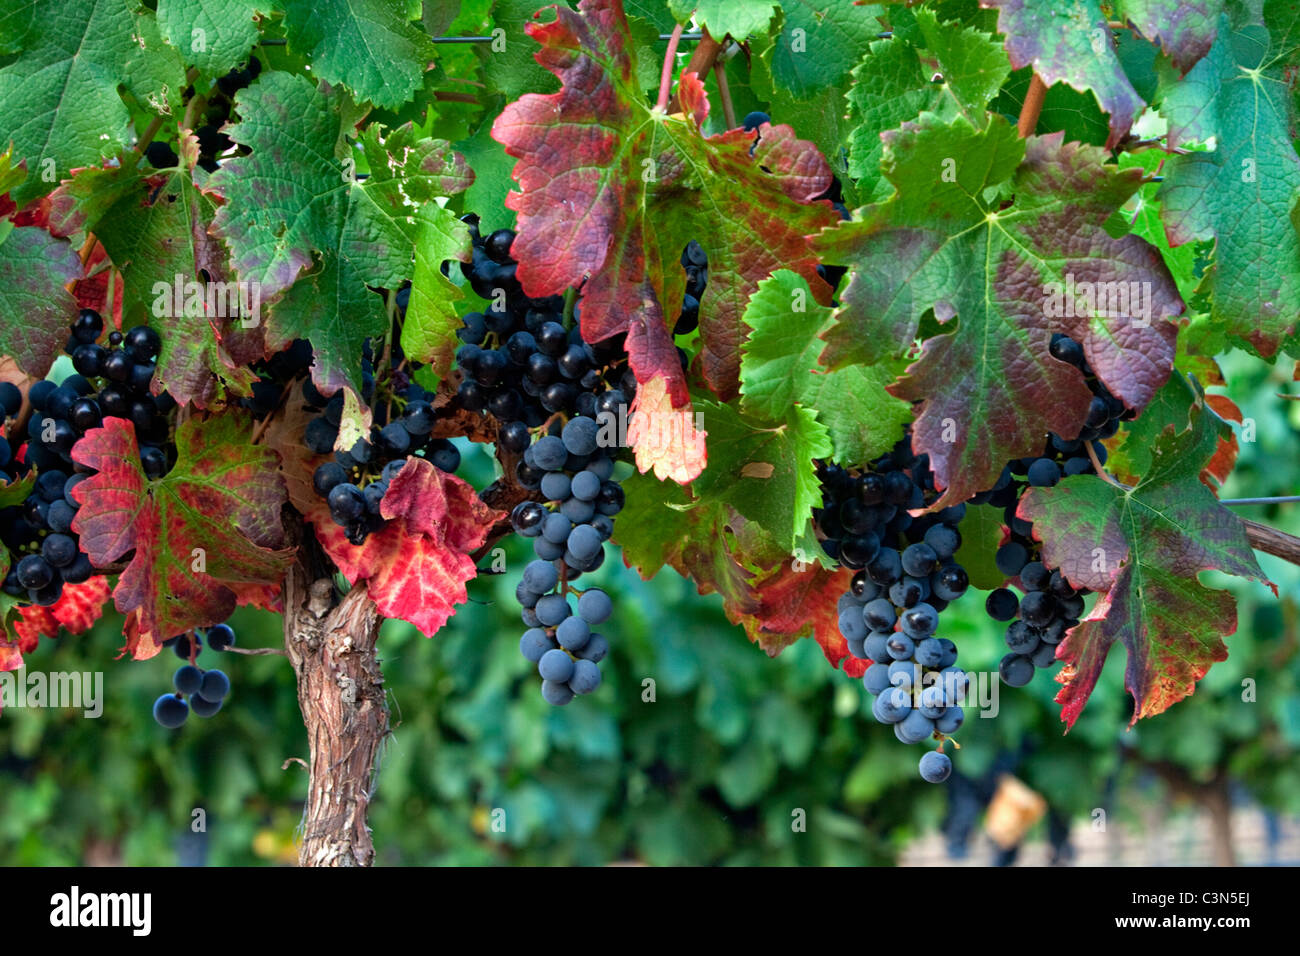 South Africa, Western Cape, near Stellenbosch, mature grapes. - Stock Image